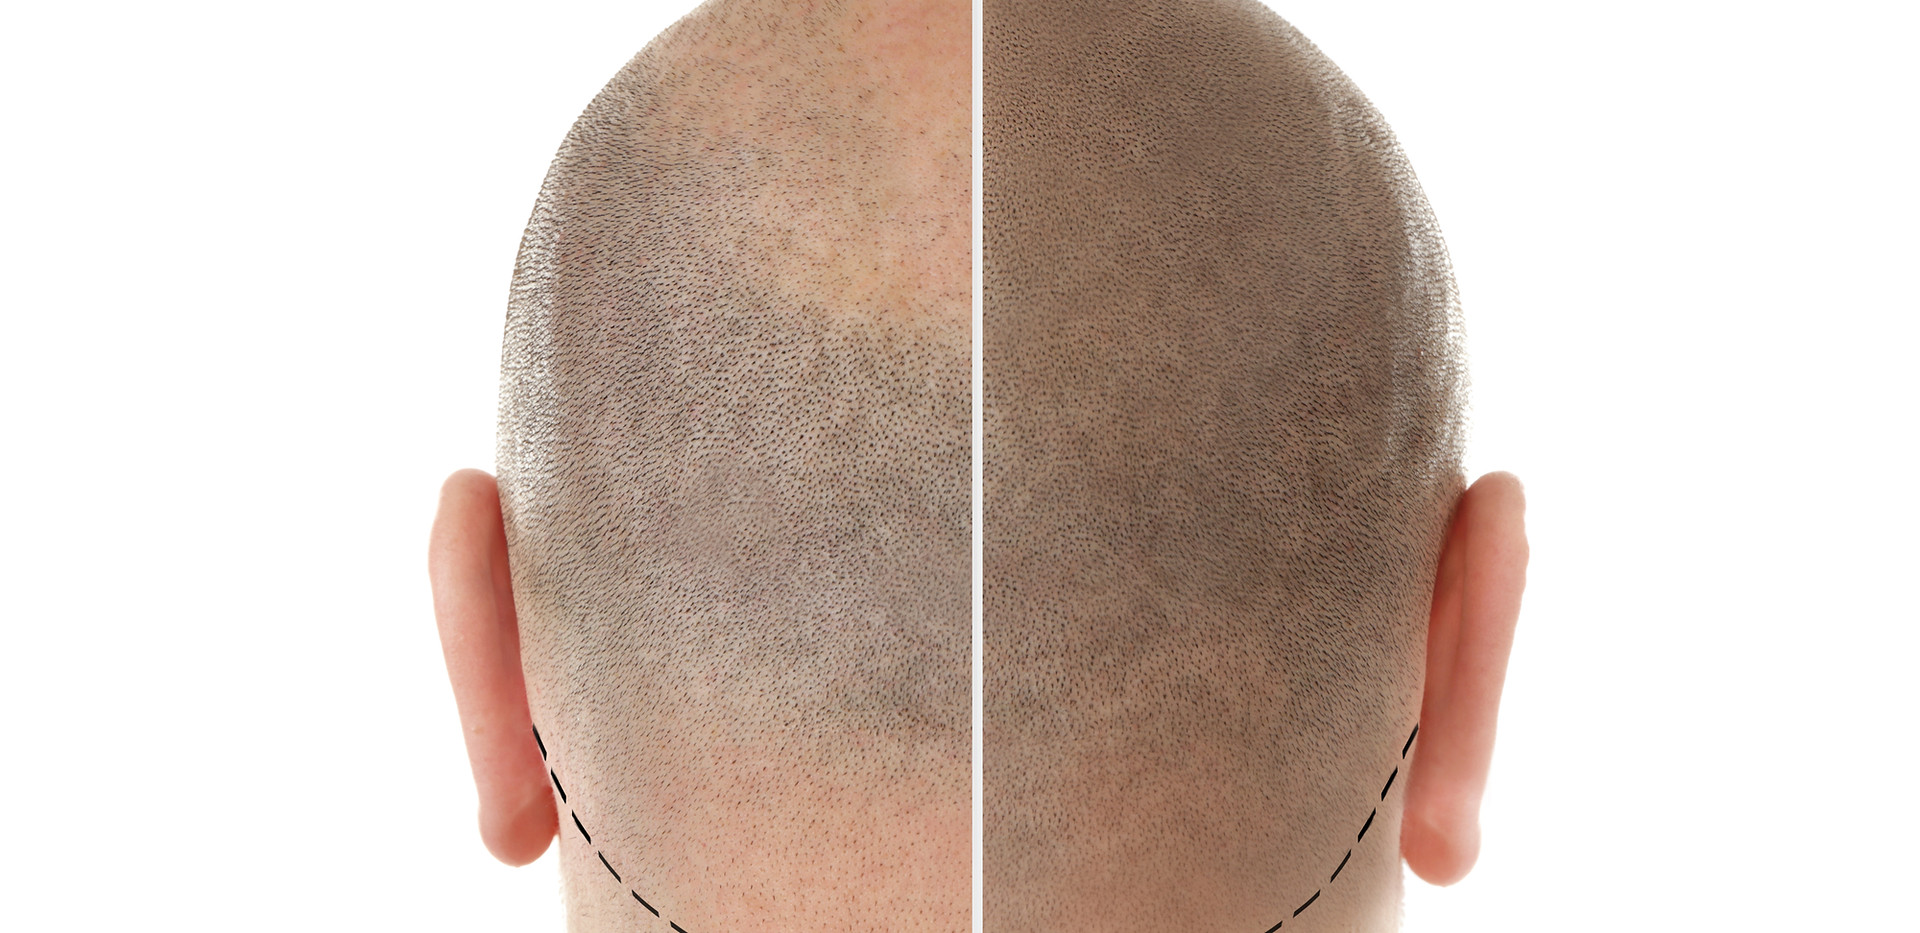 Man before and after hair loss treatment on white background.jpg